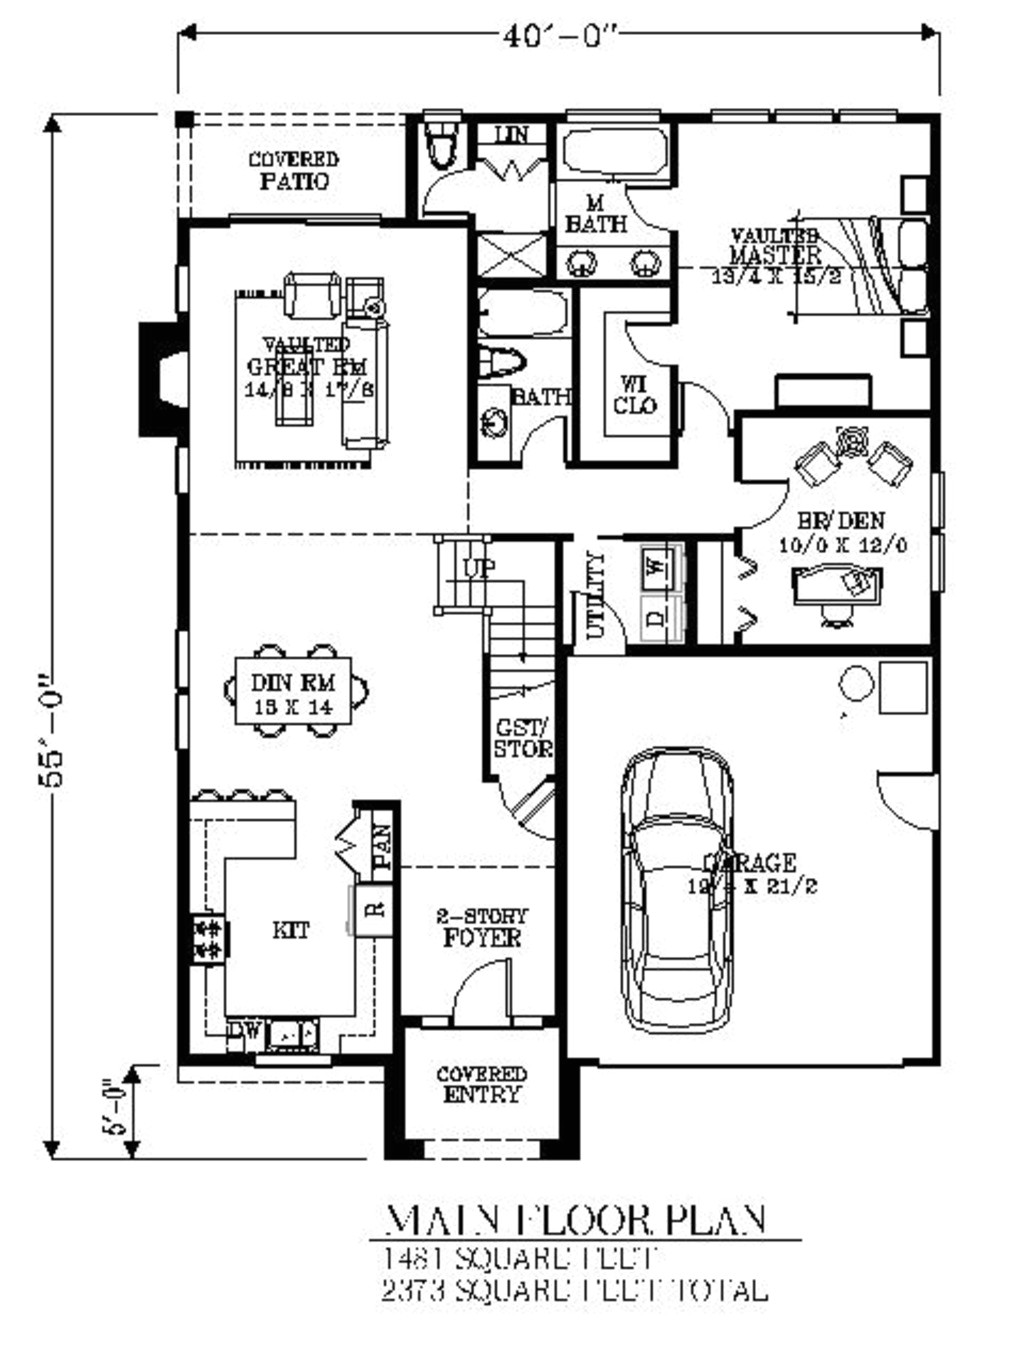 pier and beam foundation house plans